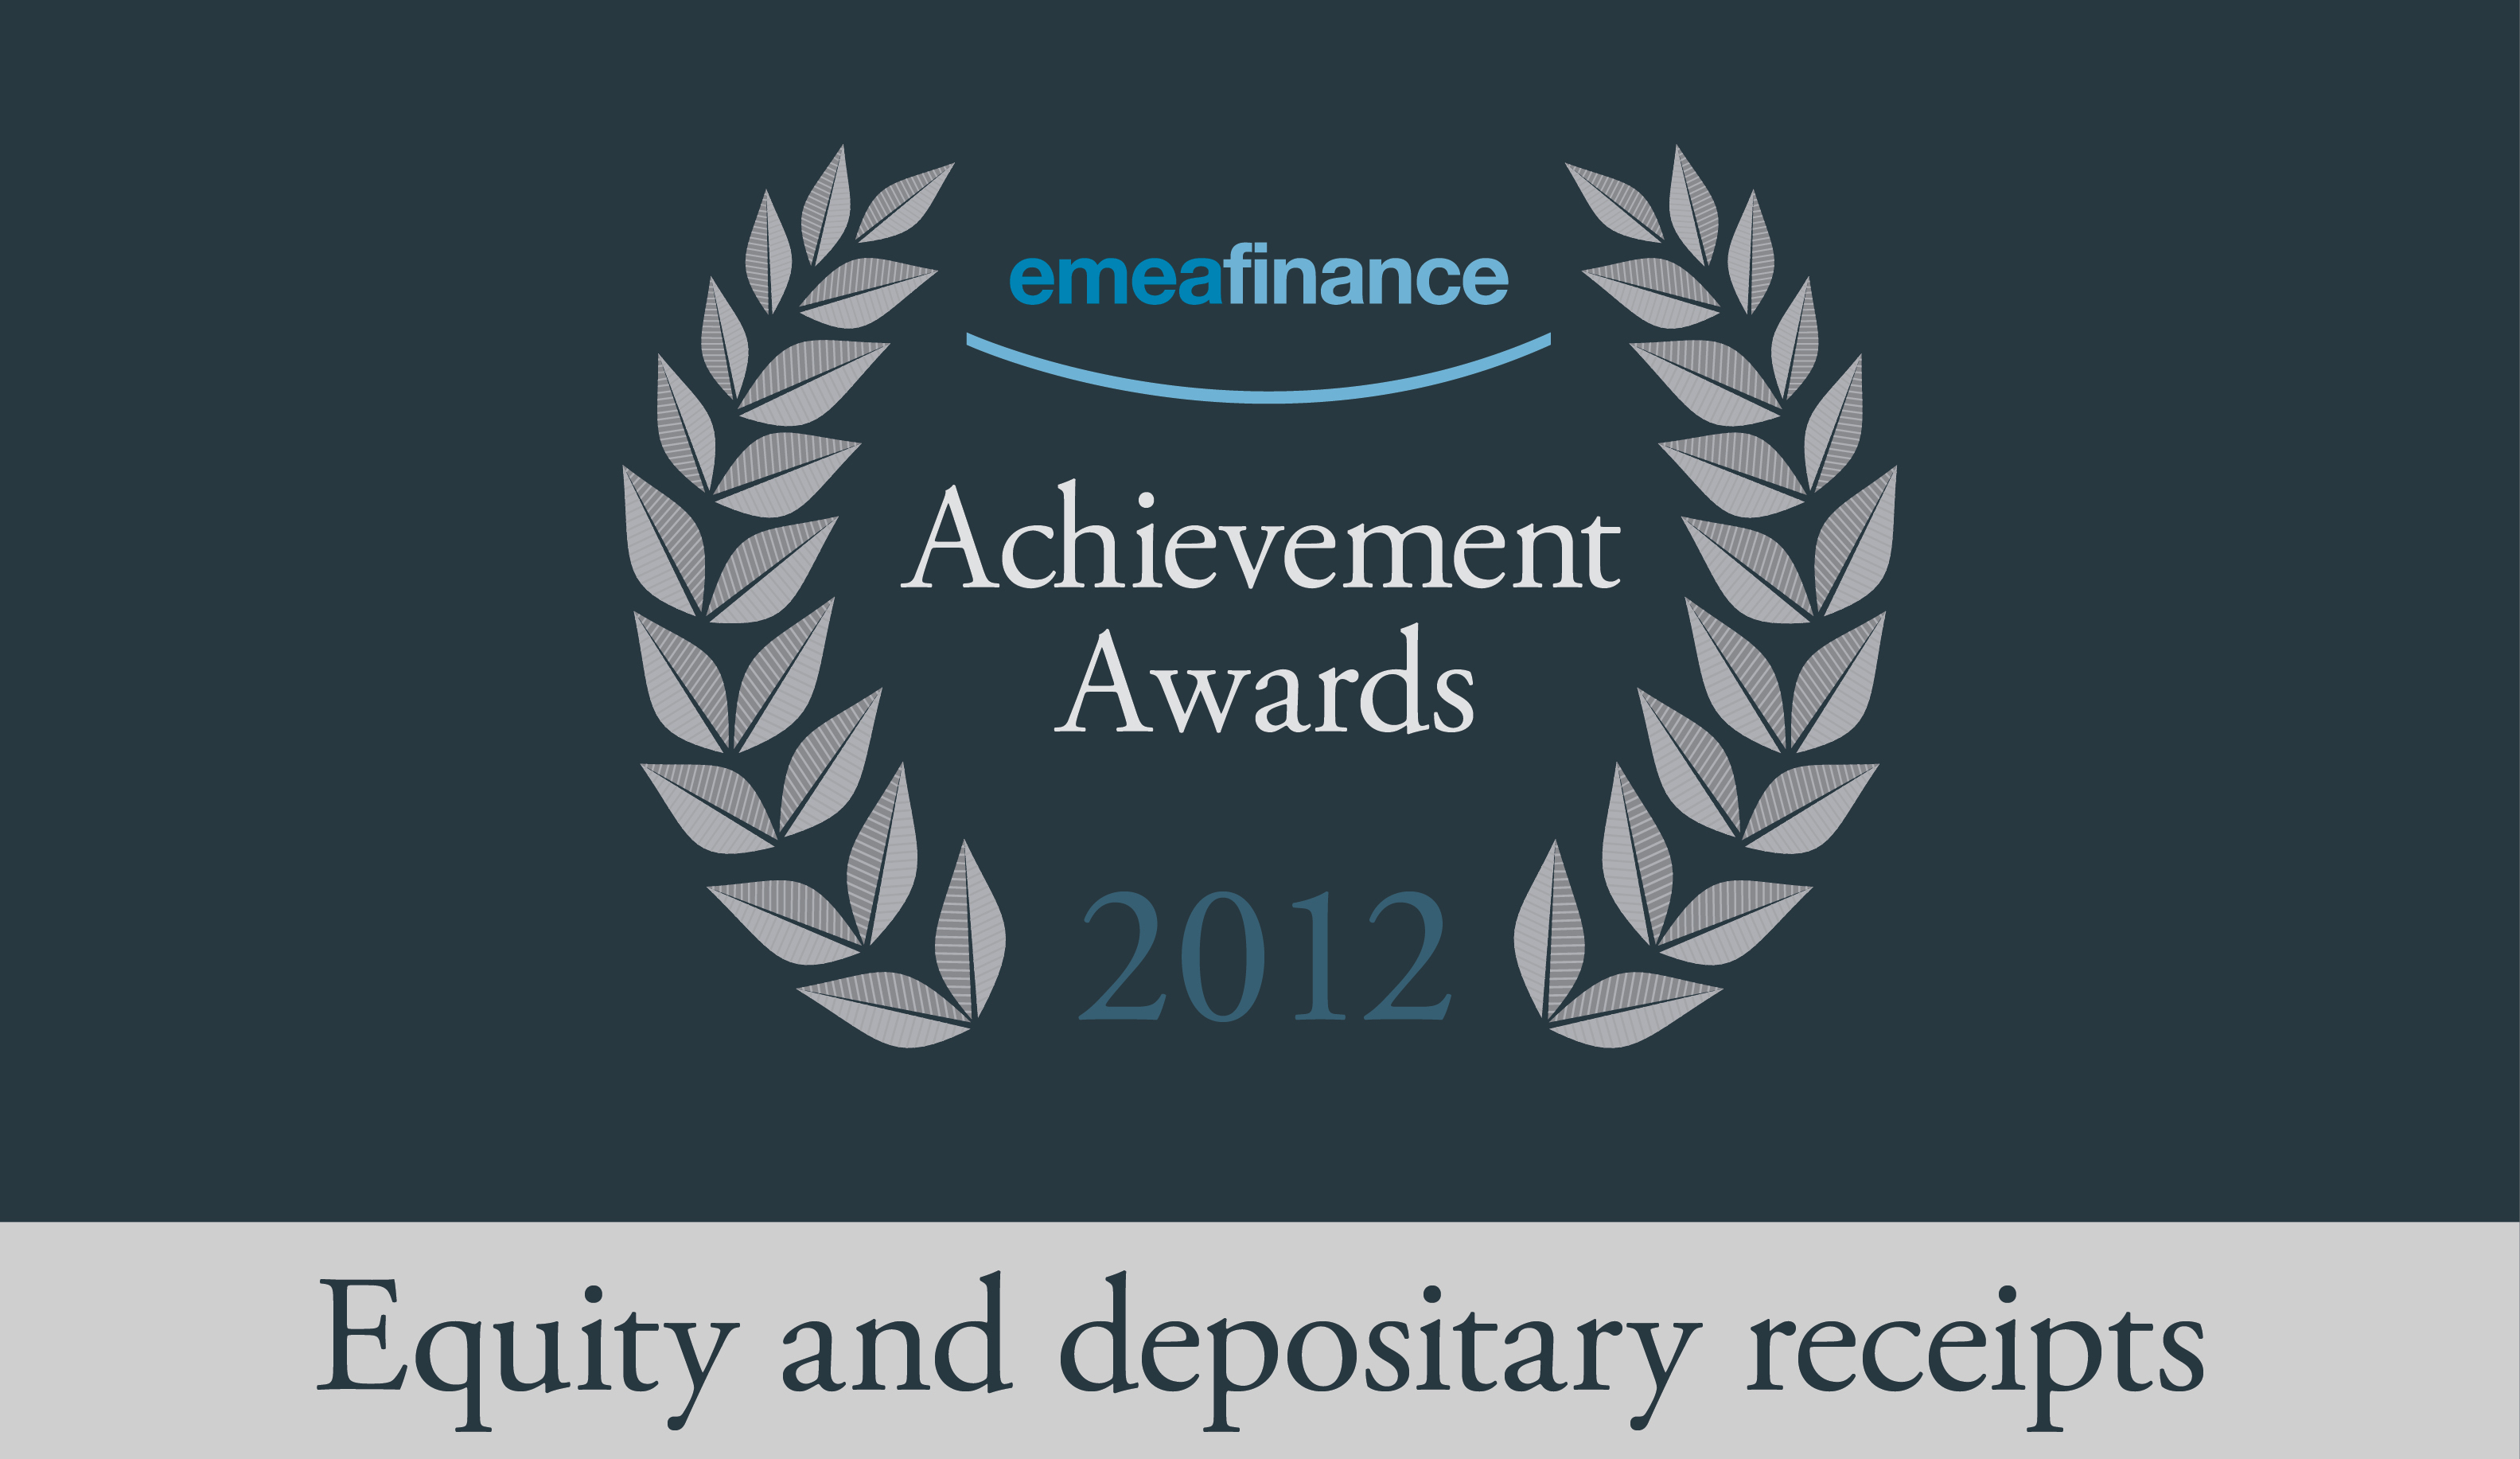 Achievement Awards 2012: Equity markets and depositary receipts